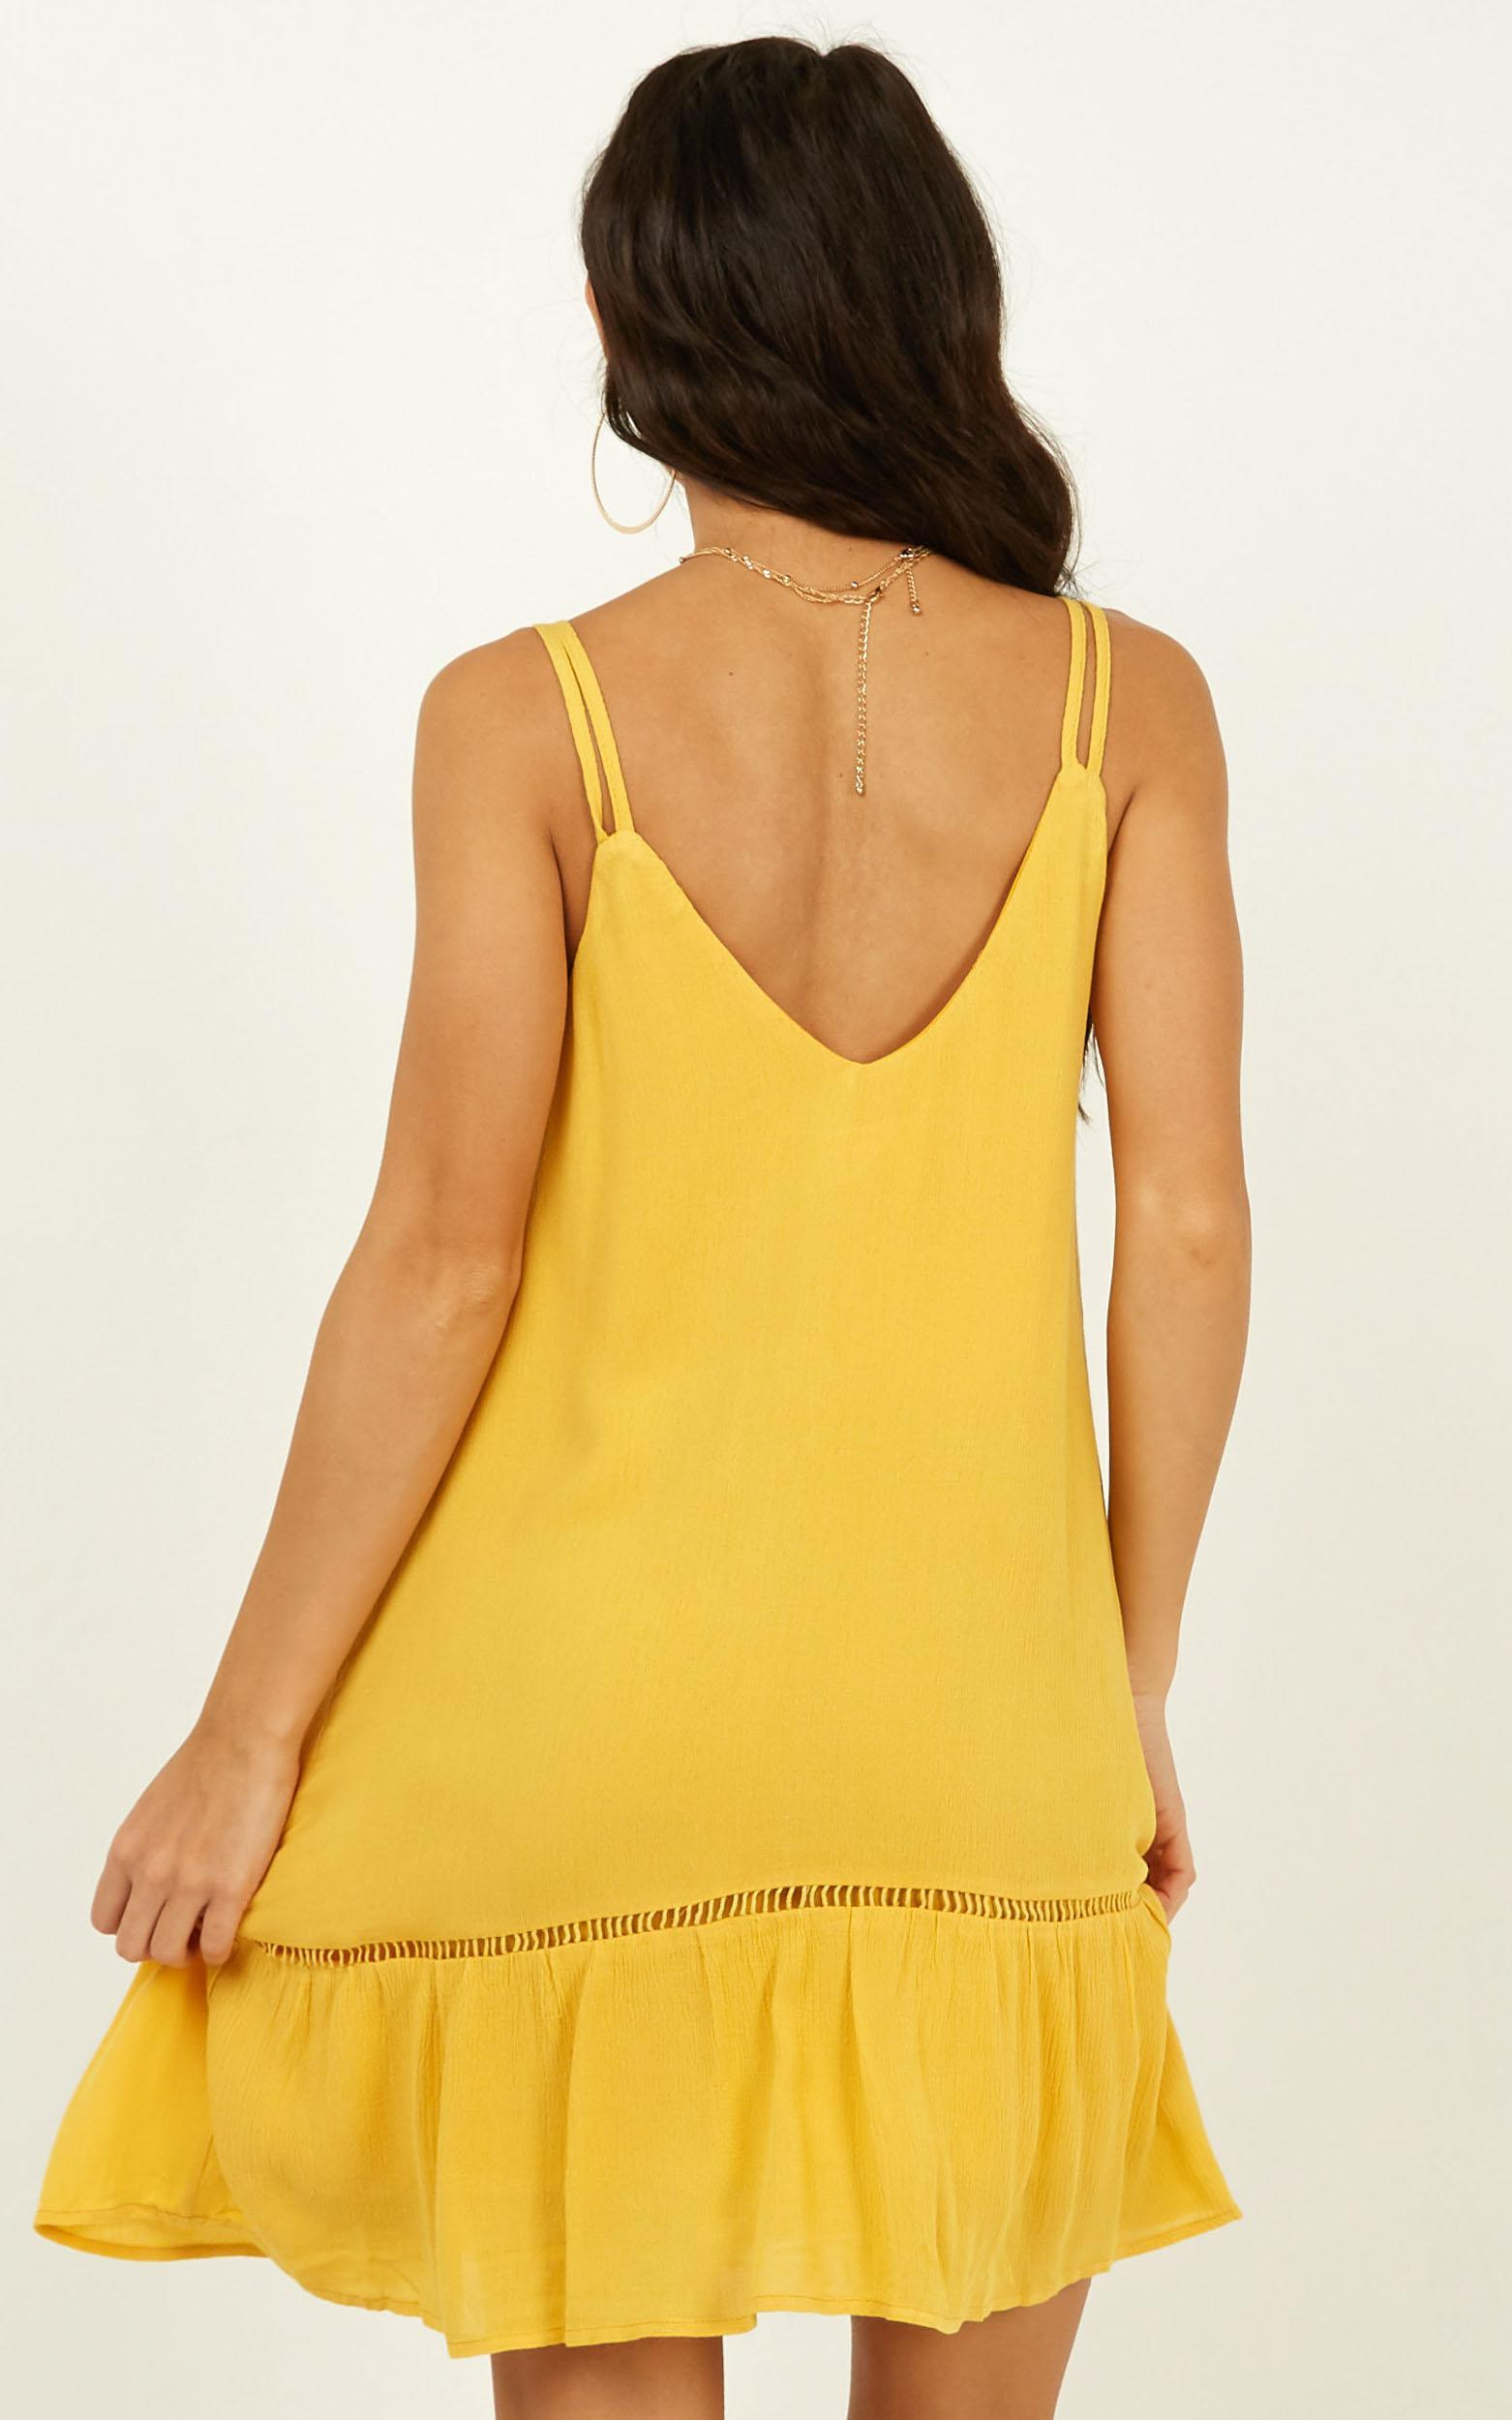 Never Looked Better Dress in yellow - 20 (XXXXL), Yellow, hi-res image number null